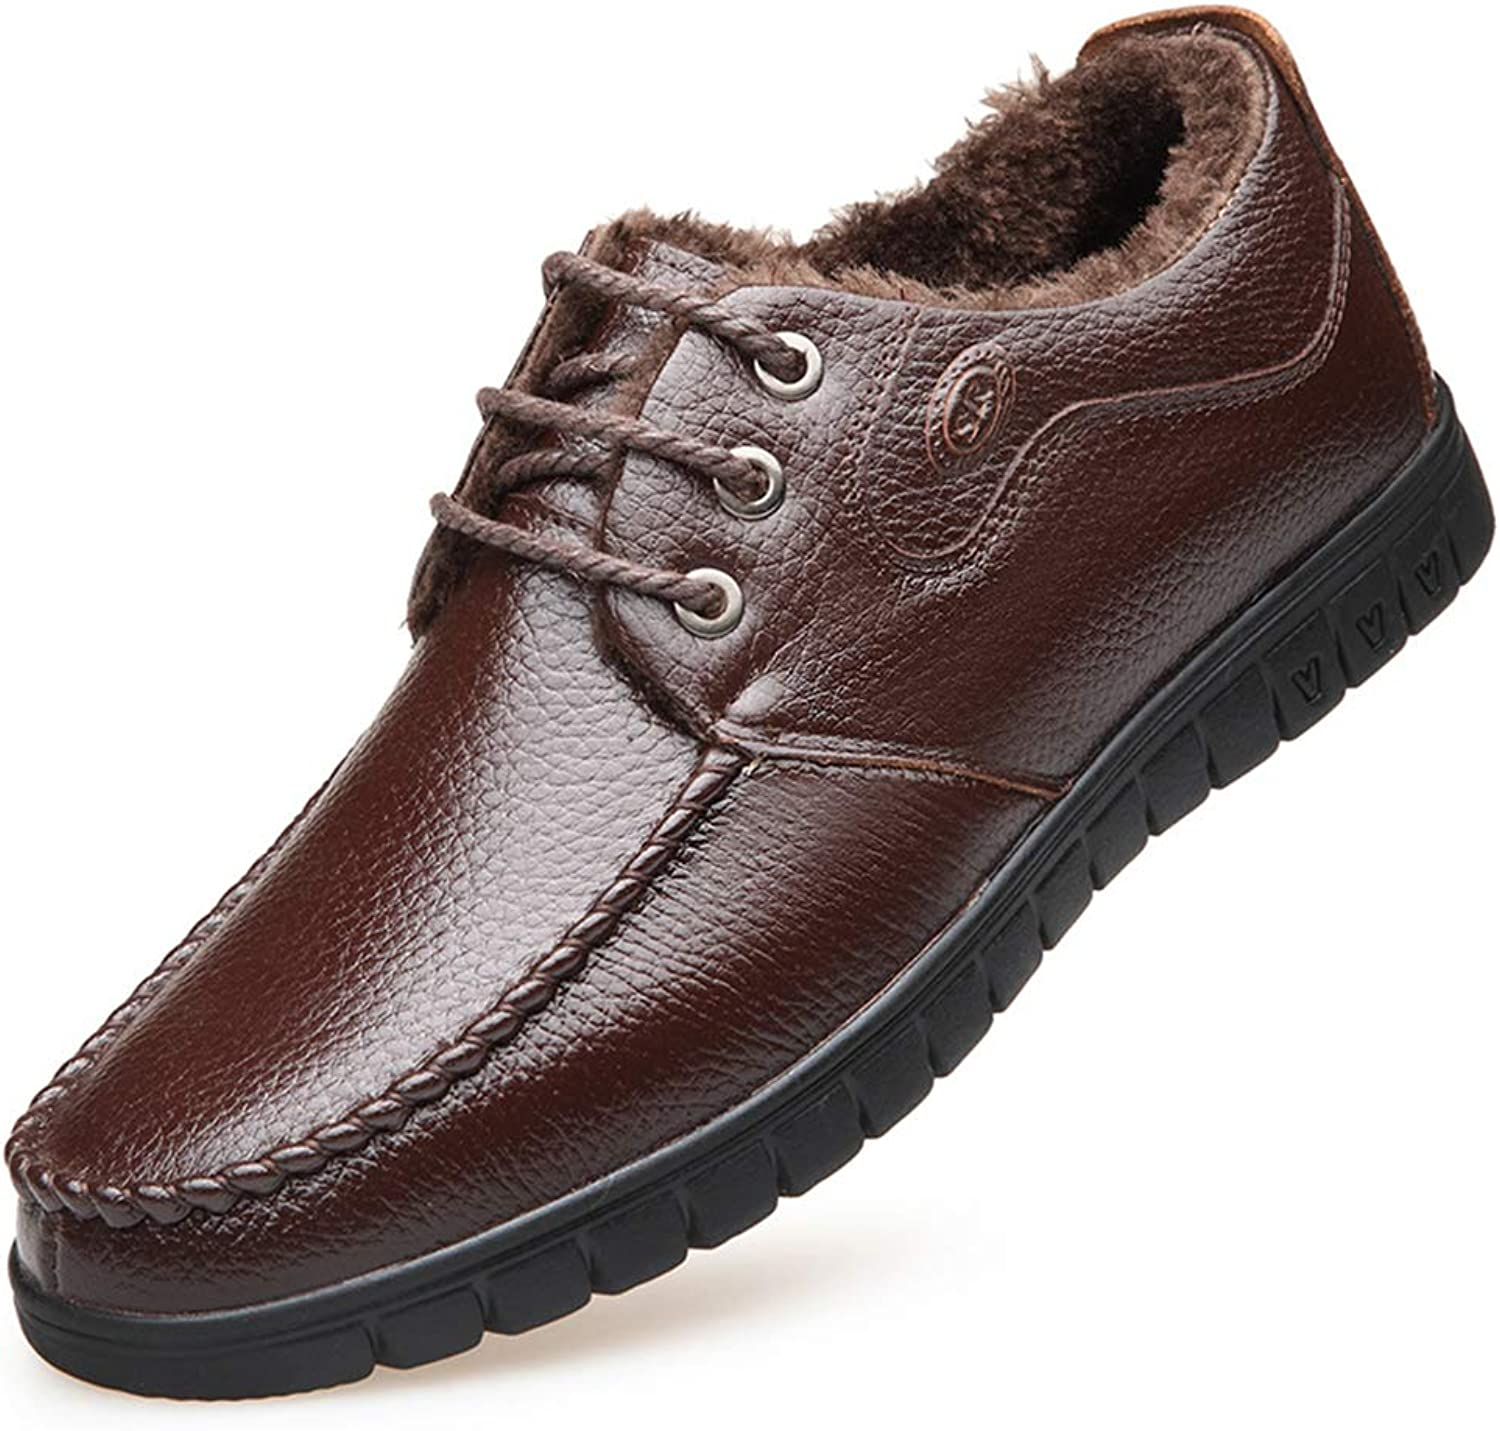 Men's Business shoes Fall Winter Casual Dad shoes Keep Warm Plus Velvet shoes Shock Absorption Leather shoes,A,41